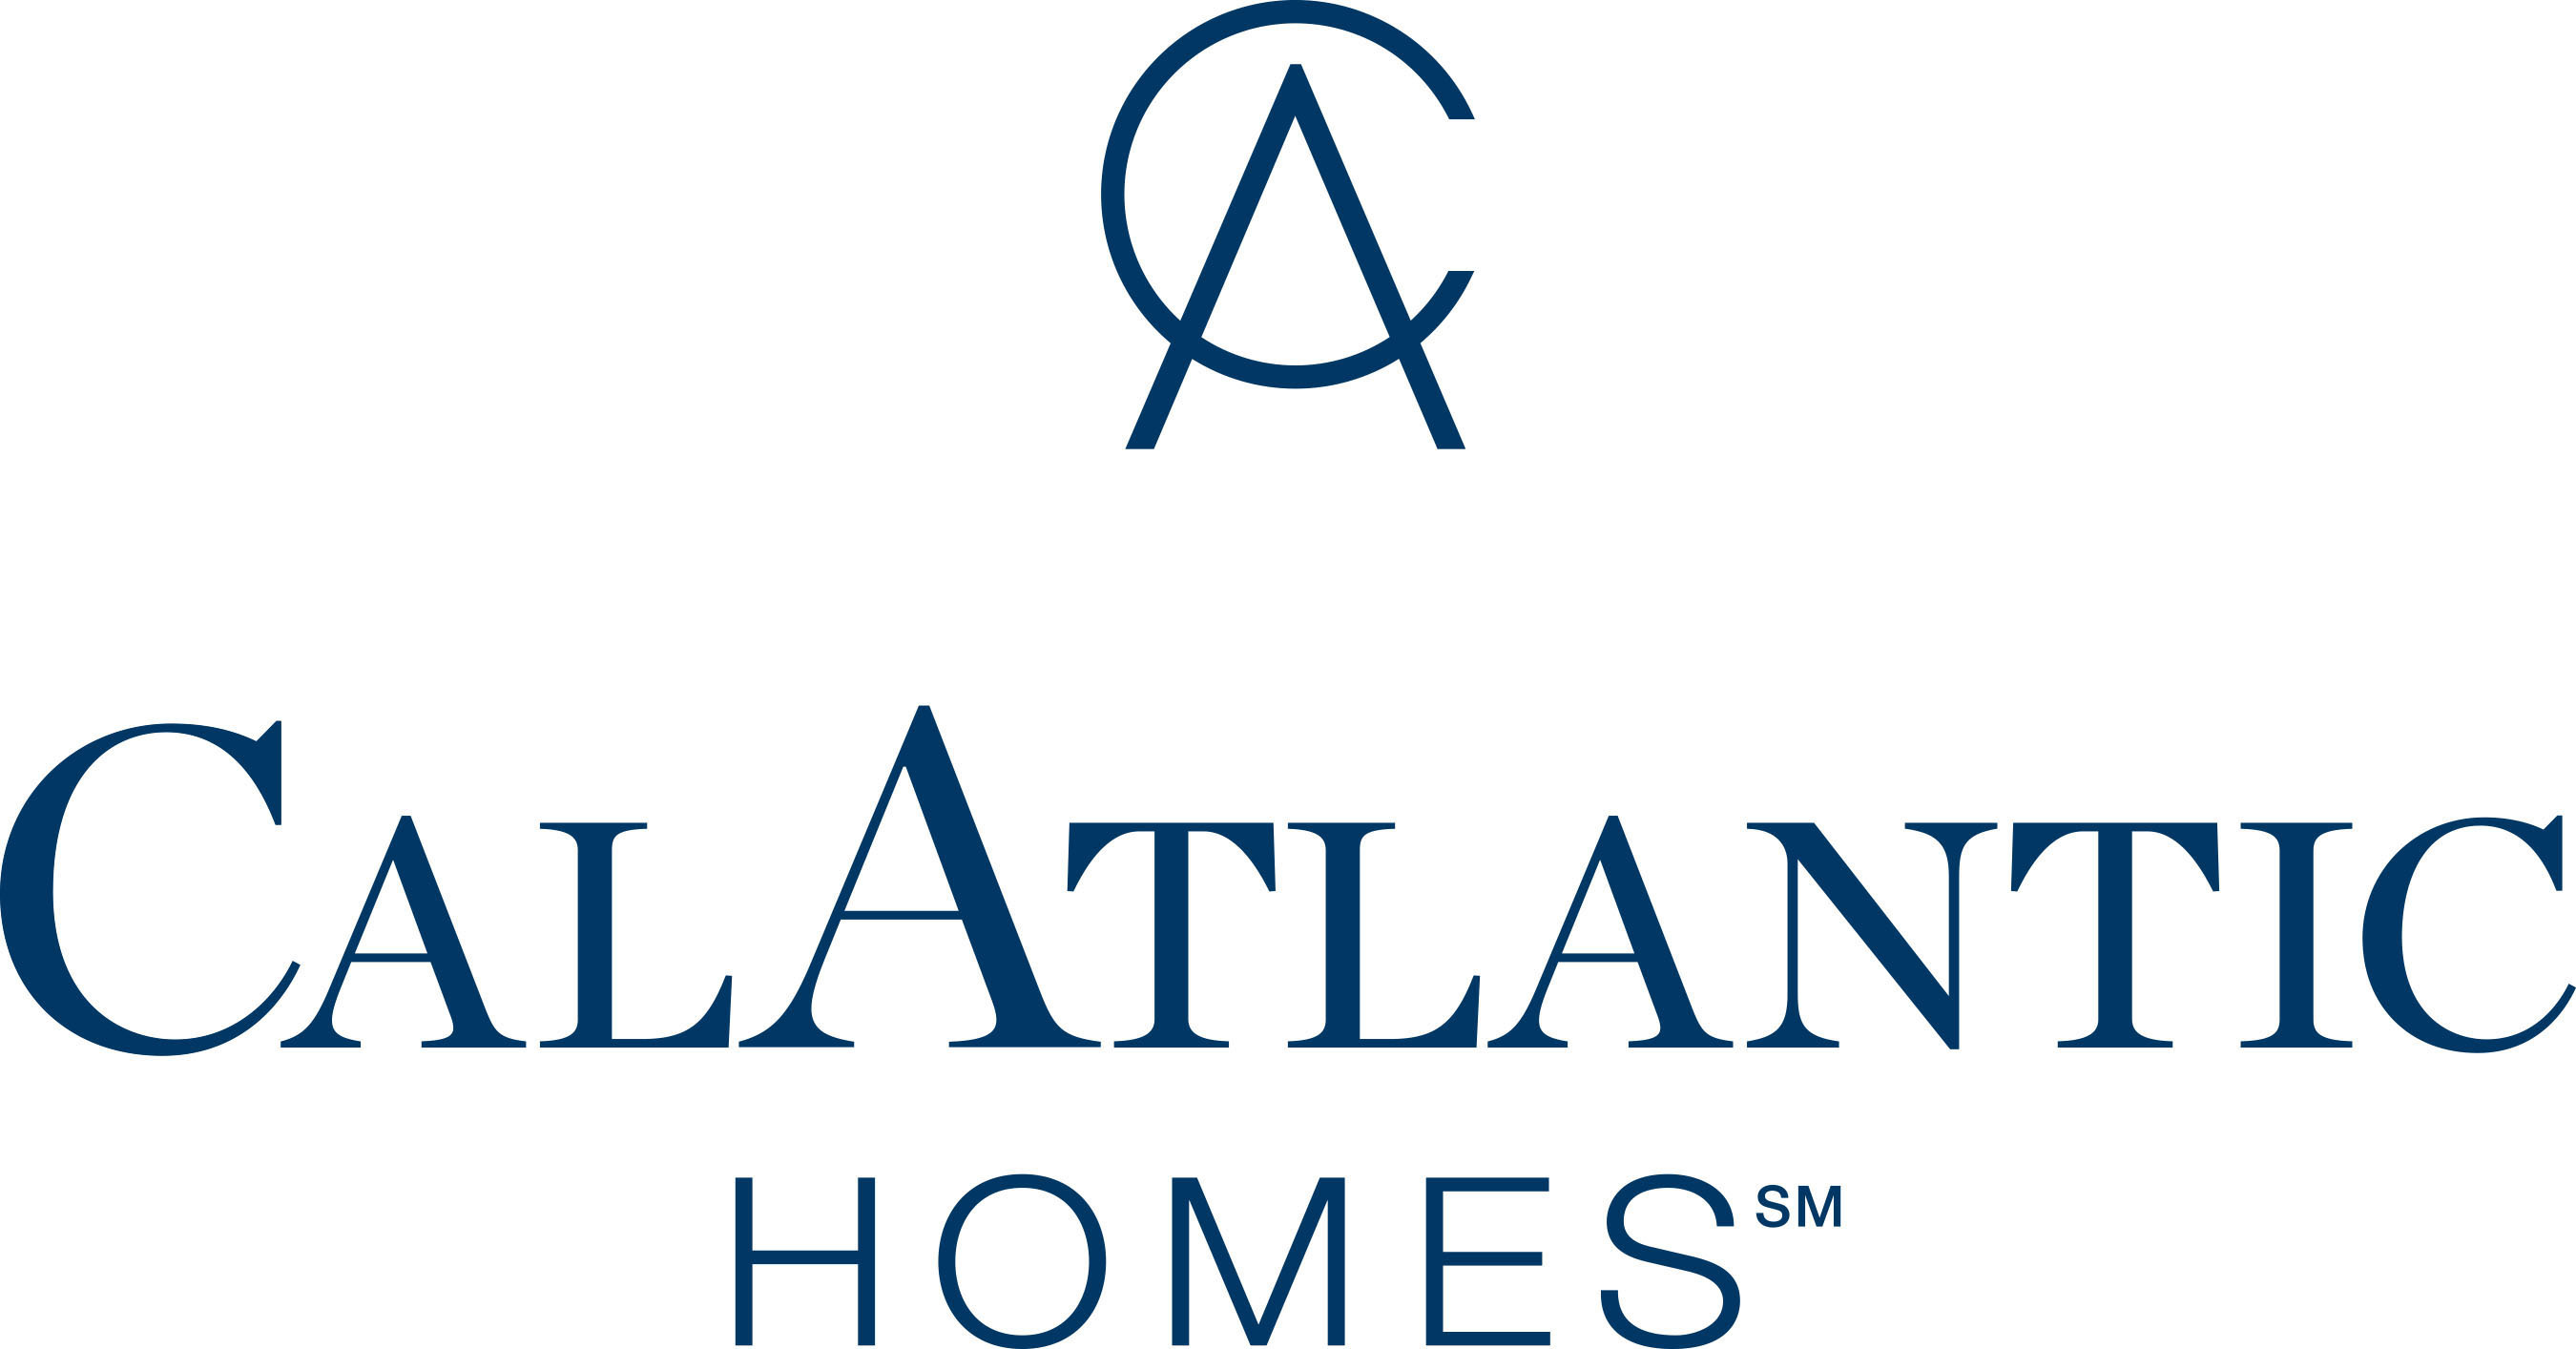 The Home Builders Association (HBA) of Greater Austin awarded CalAtlantic Homes with the Grand MAX Large Volume Builder of the Year Award for the second consecutive year at their annual Marketing and Advertising Excellence (MAX) Awards and Gala.